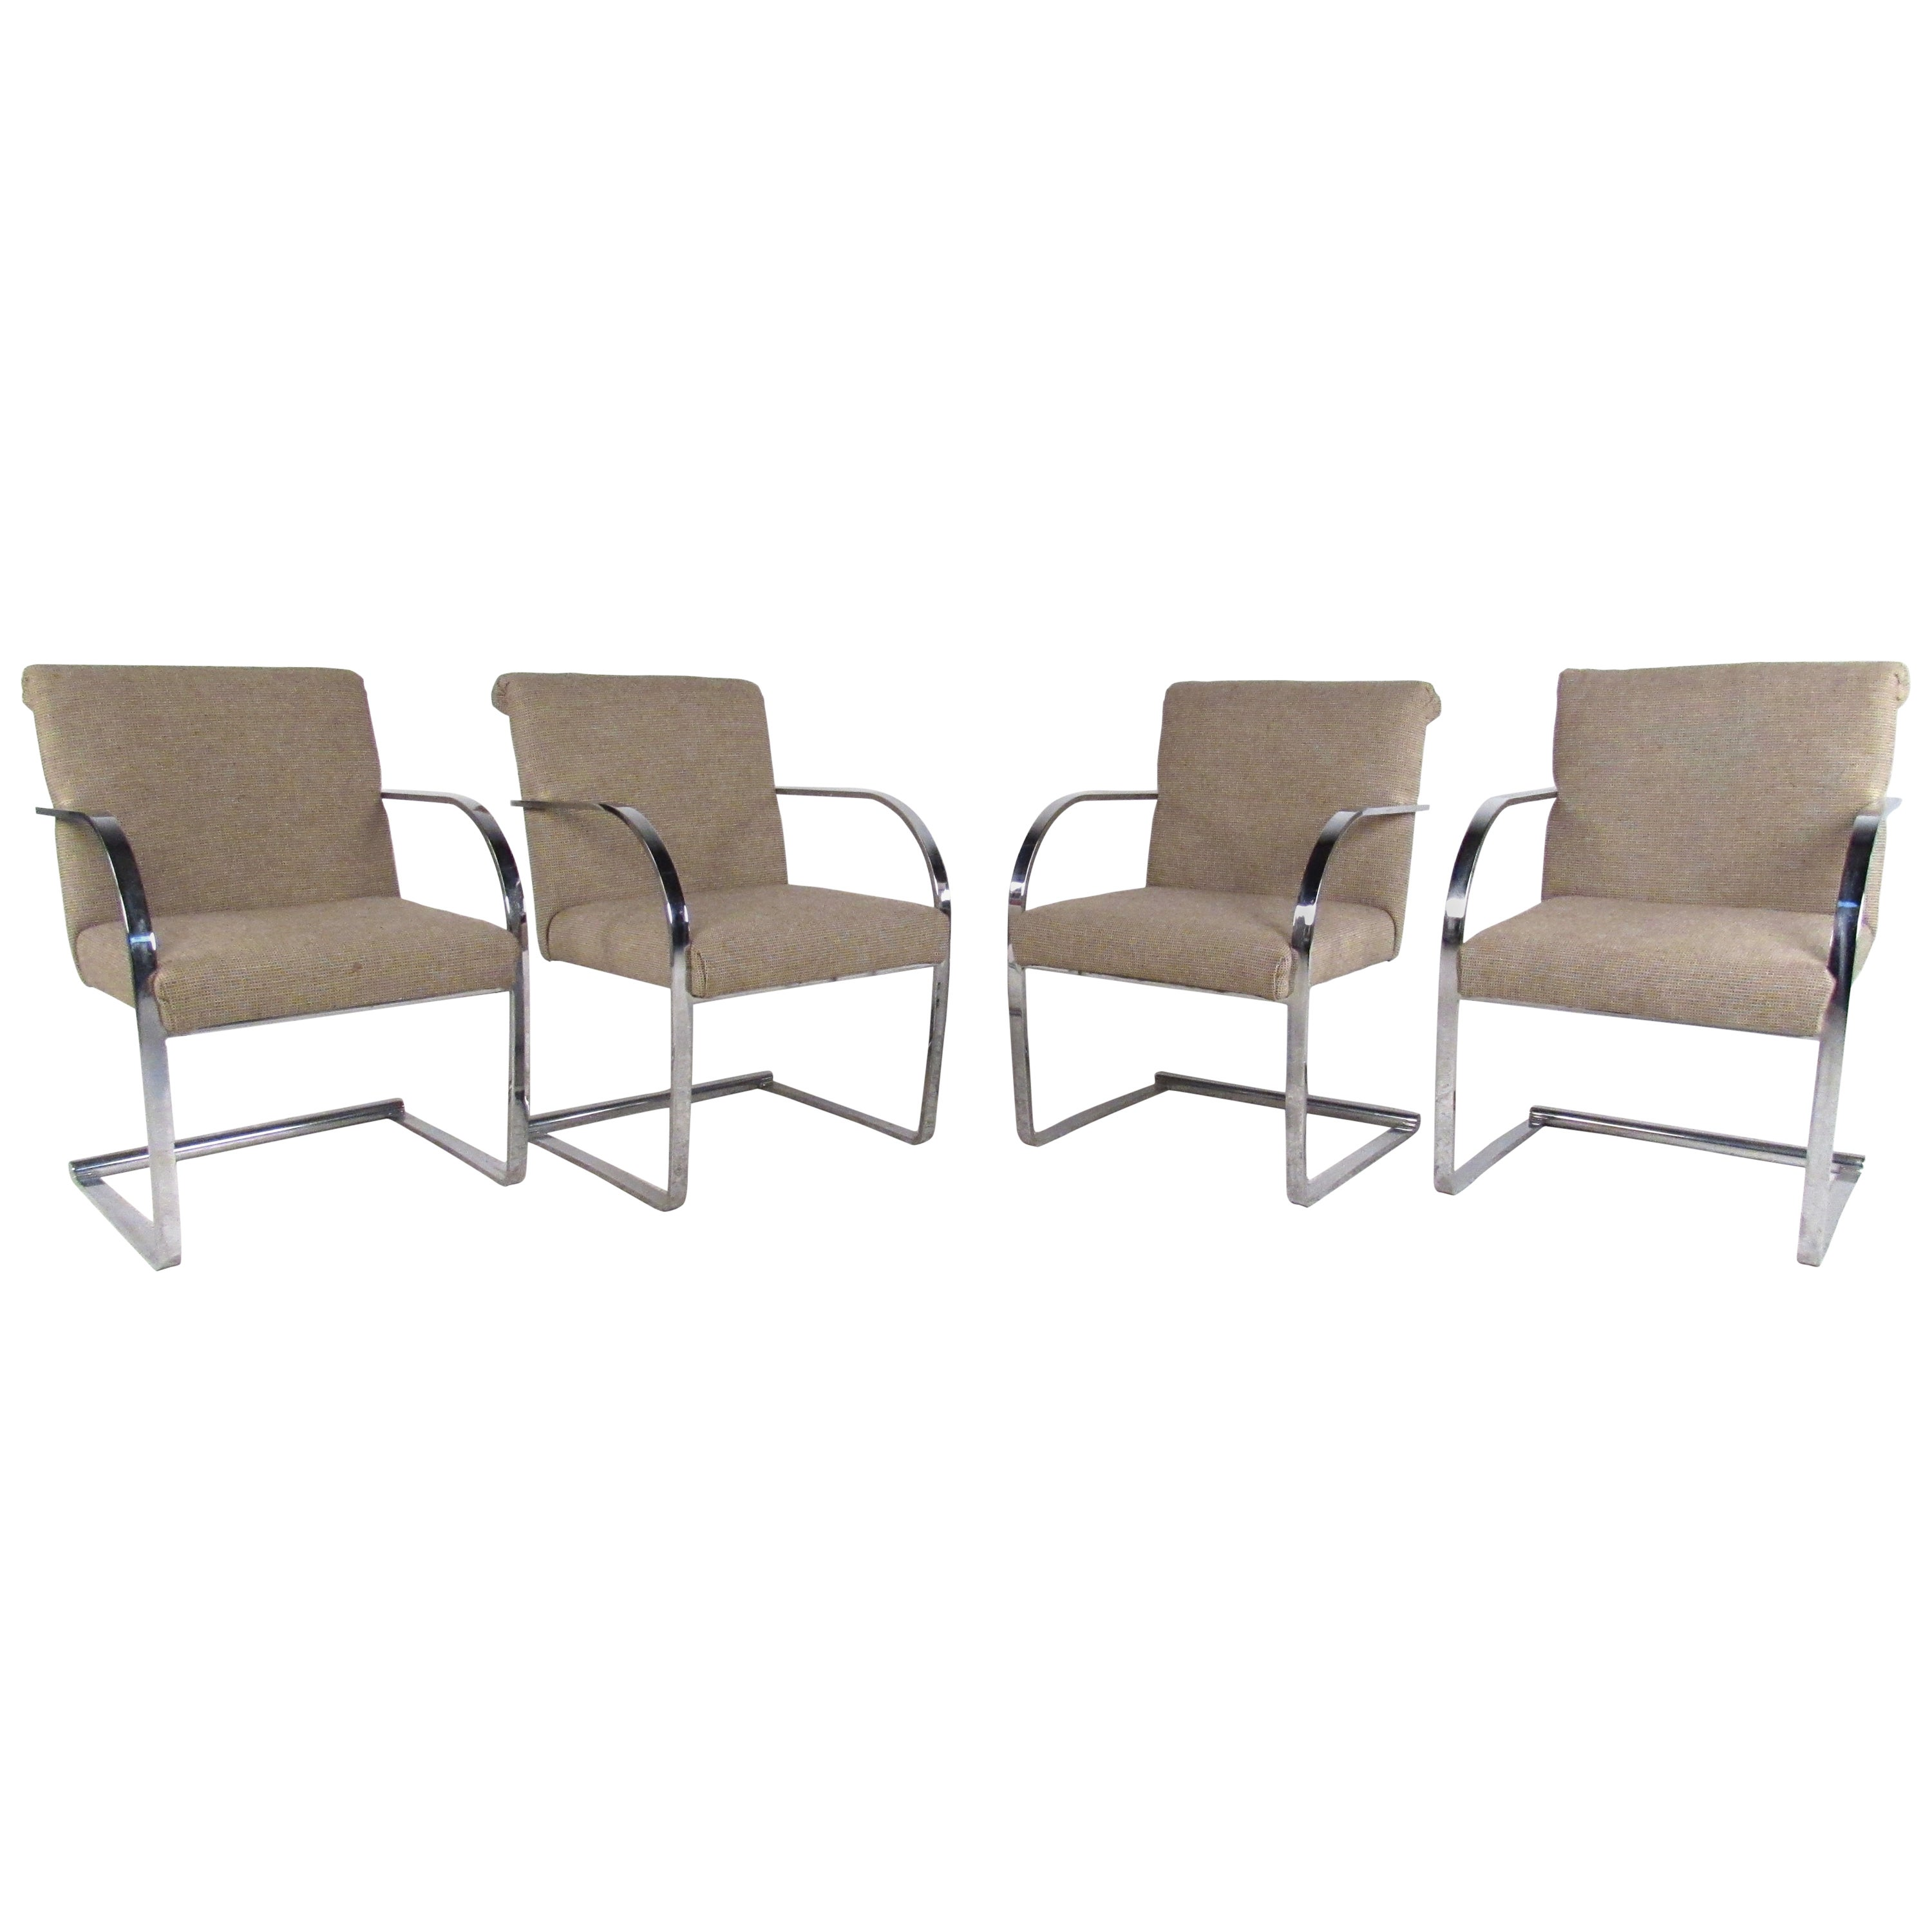 Set of Four Mid-Century Modern Knoll Style Brno Dining Chairs